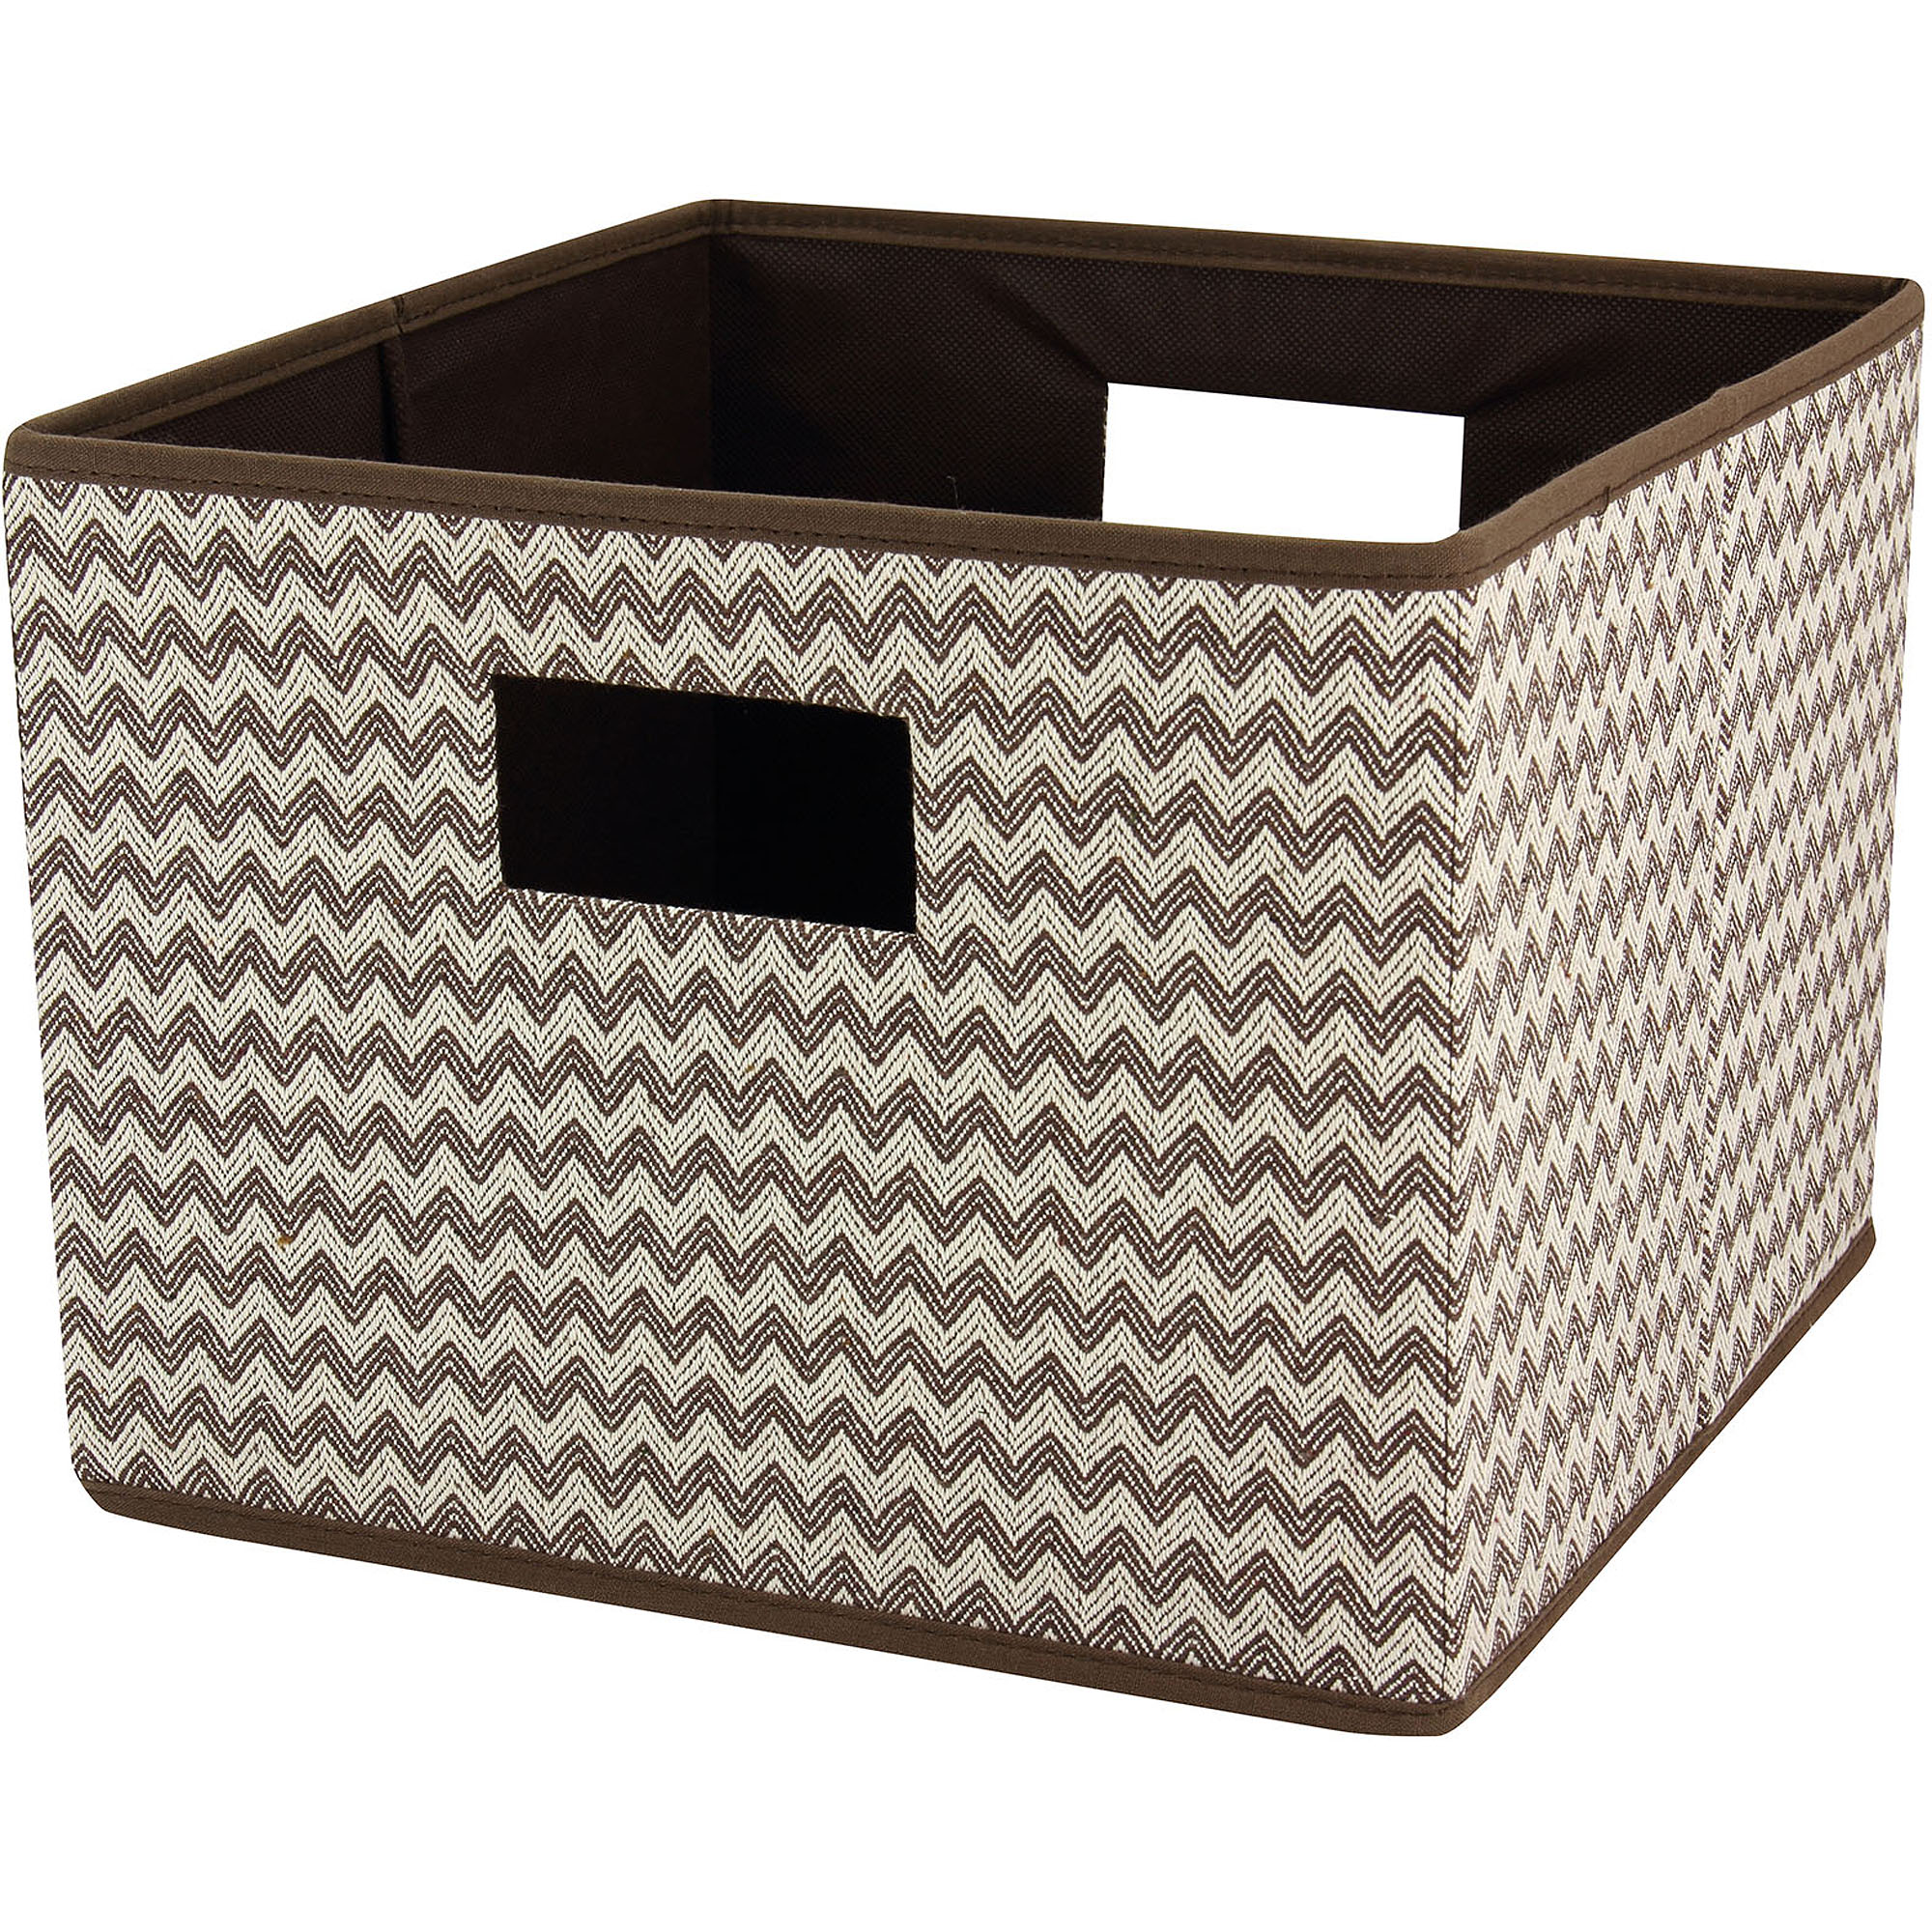 Household Essentials Open Storage Bin, Brown Chevron